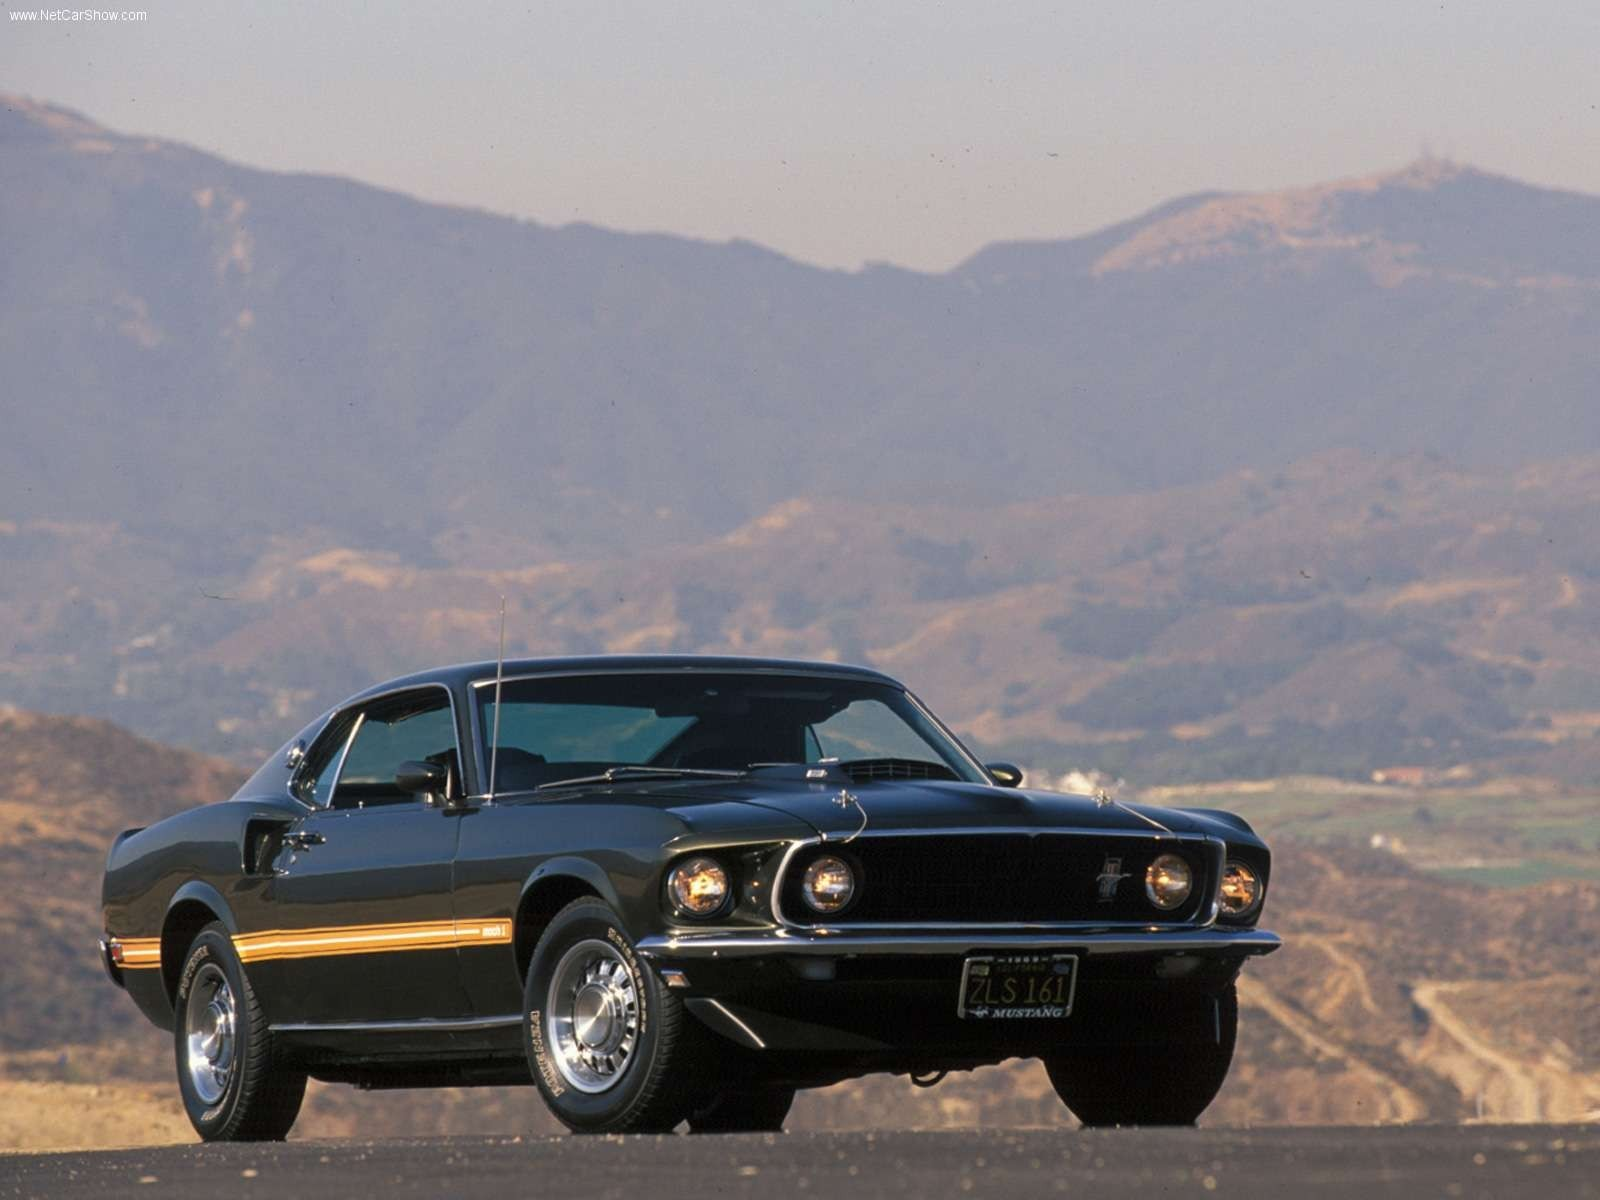 Ford Mustang Mach 1 HD Wallpaper